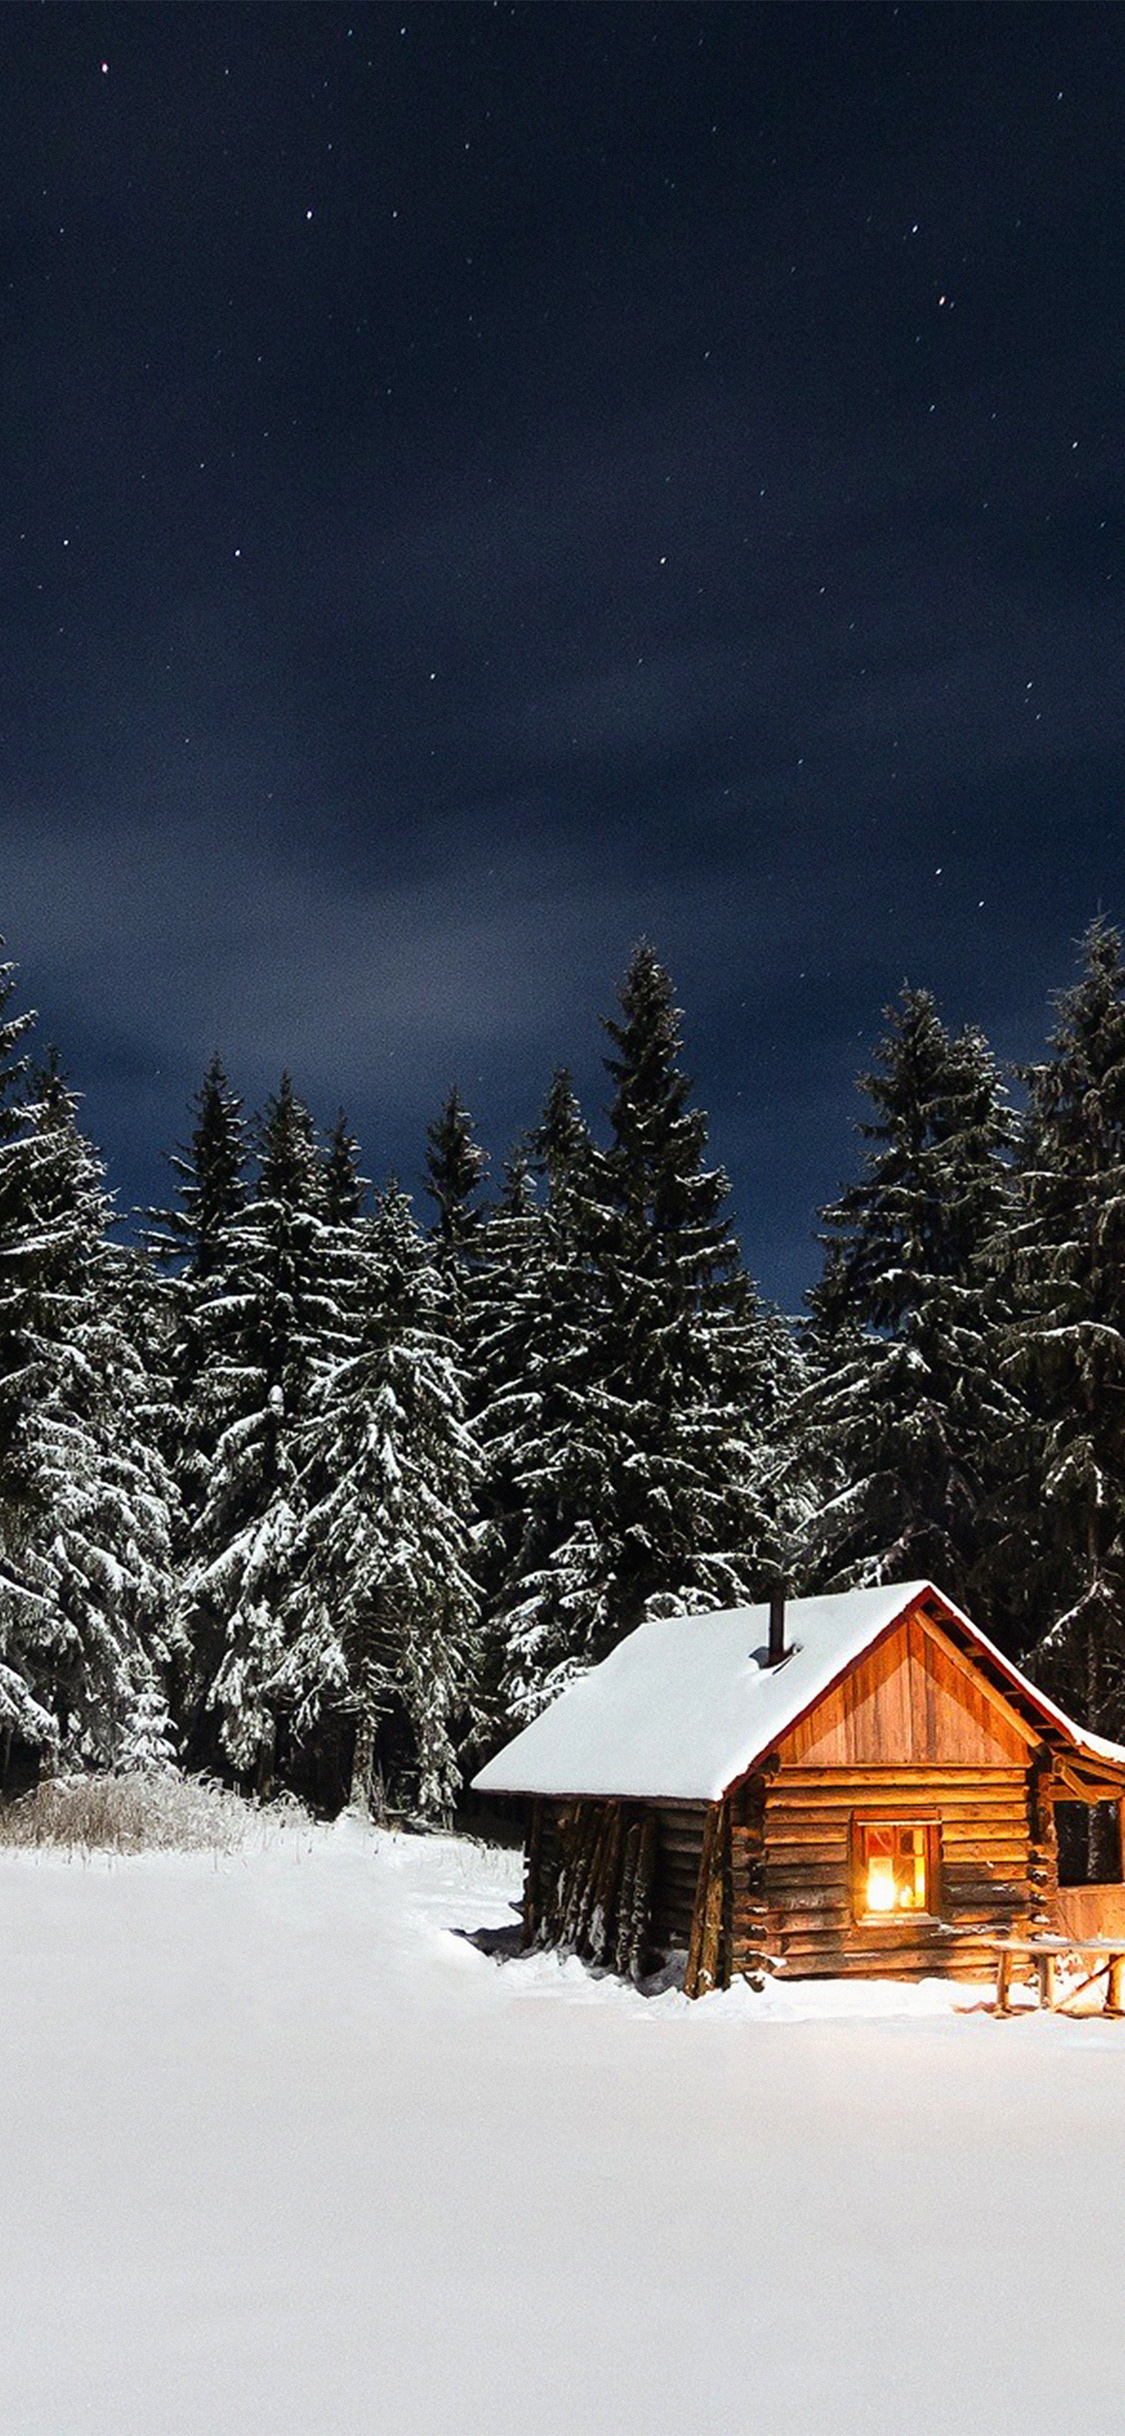 Iphonepapers Com Iphone 8 Wallpaper Nl37 Winter House